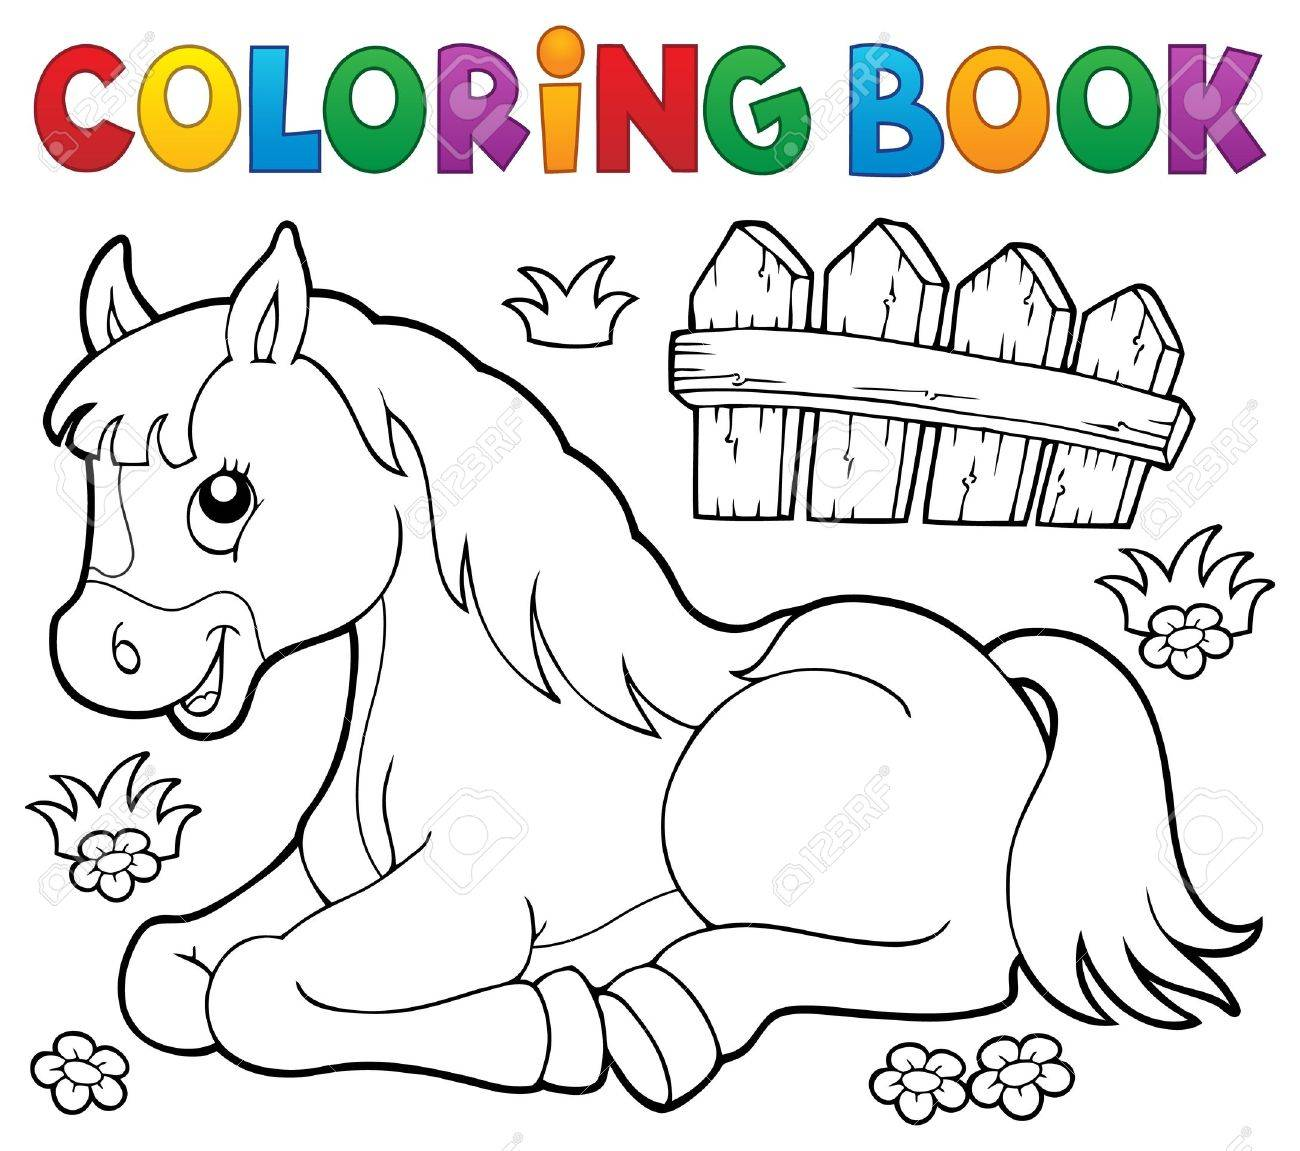 Coloring Book Horse Topic 1 - Eps10 Vector Illustration. Royalty ...